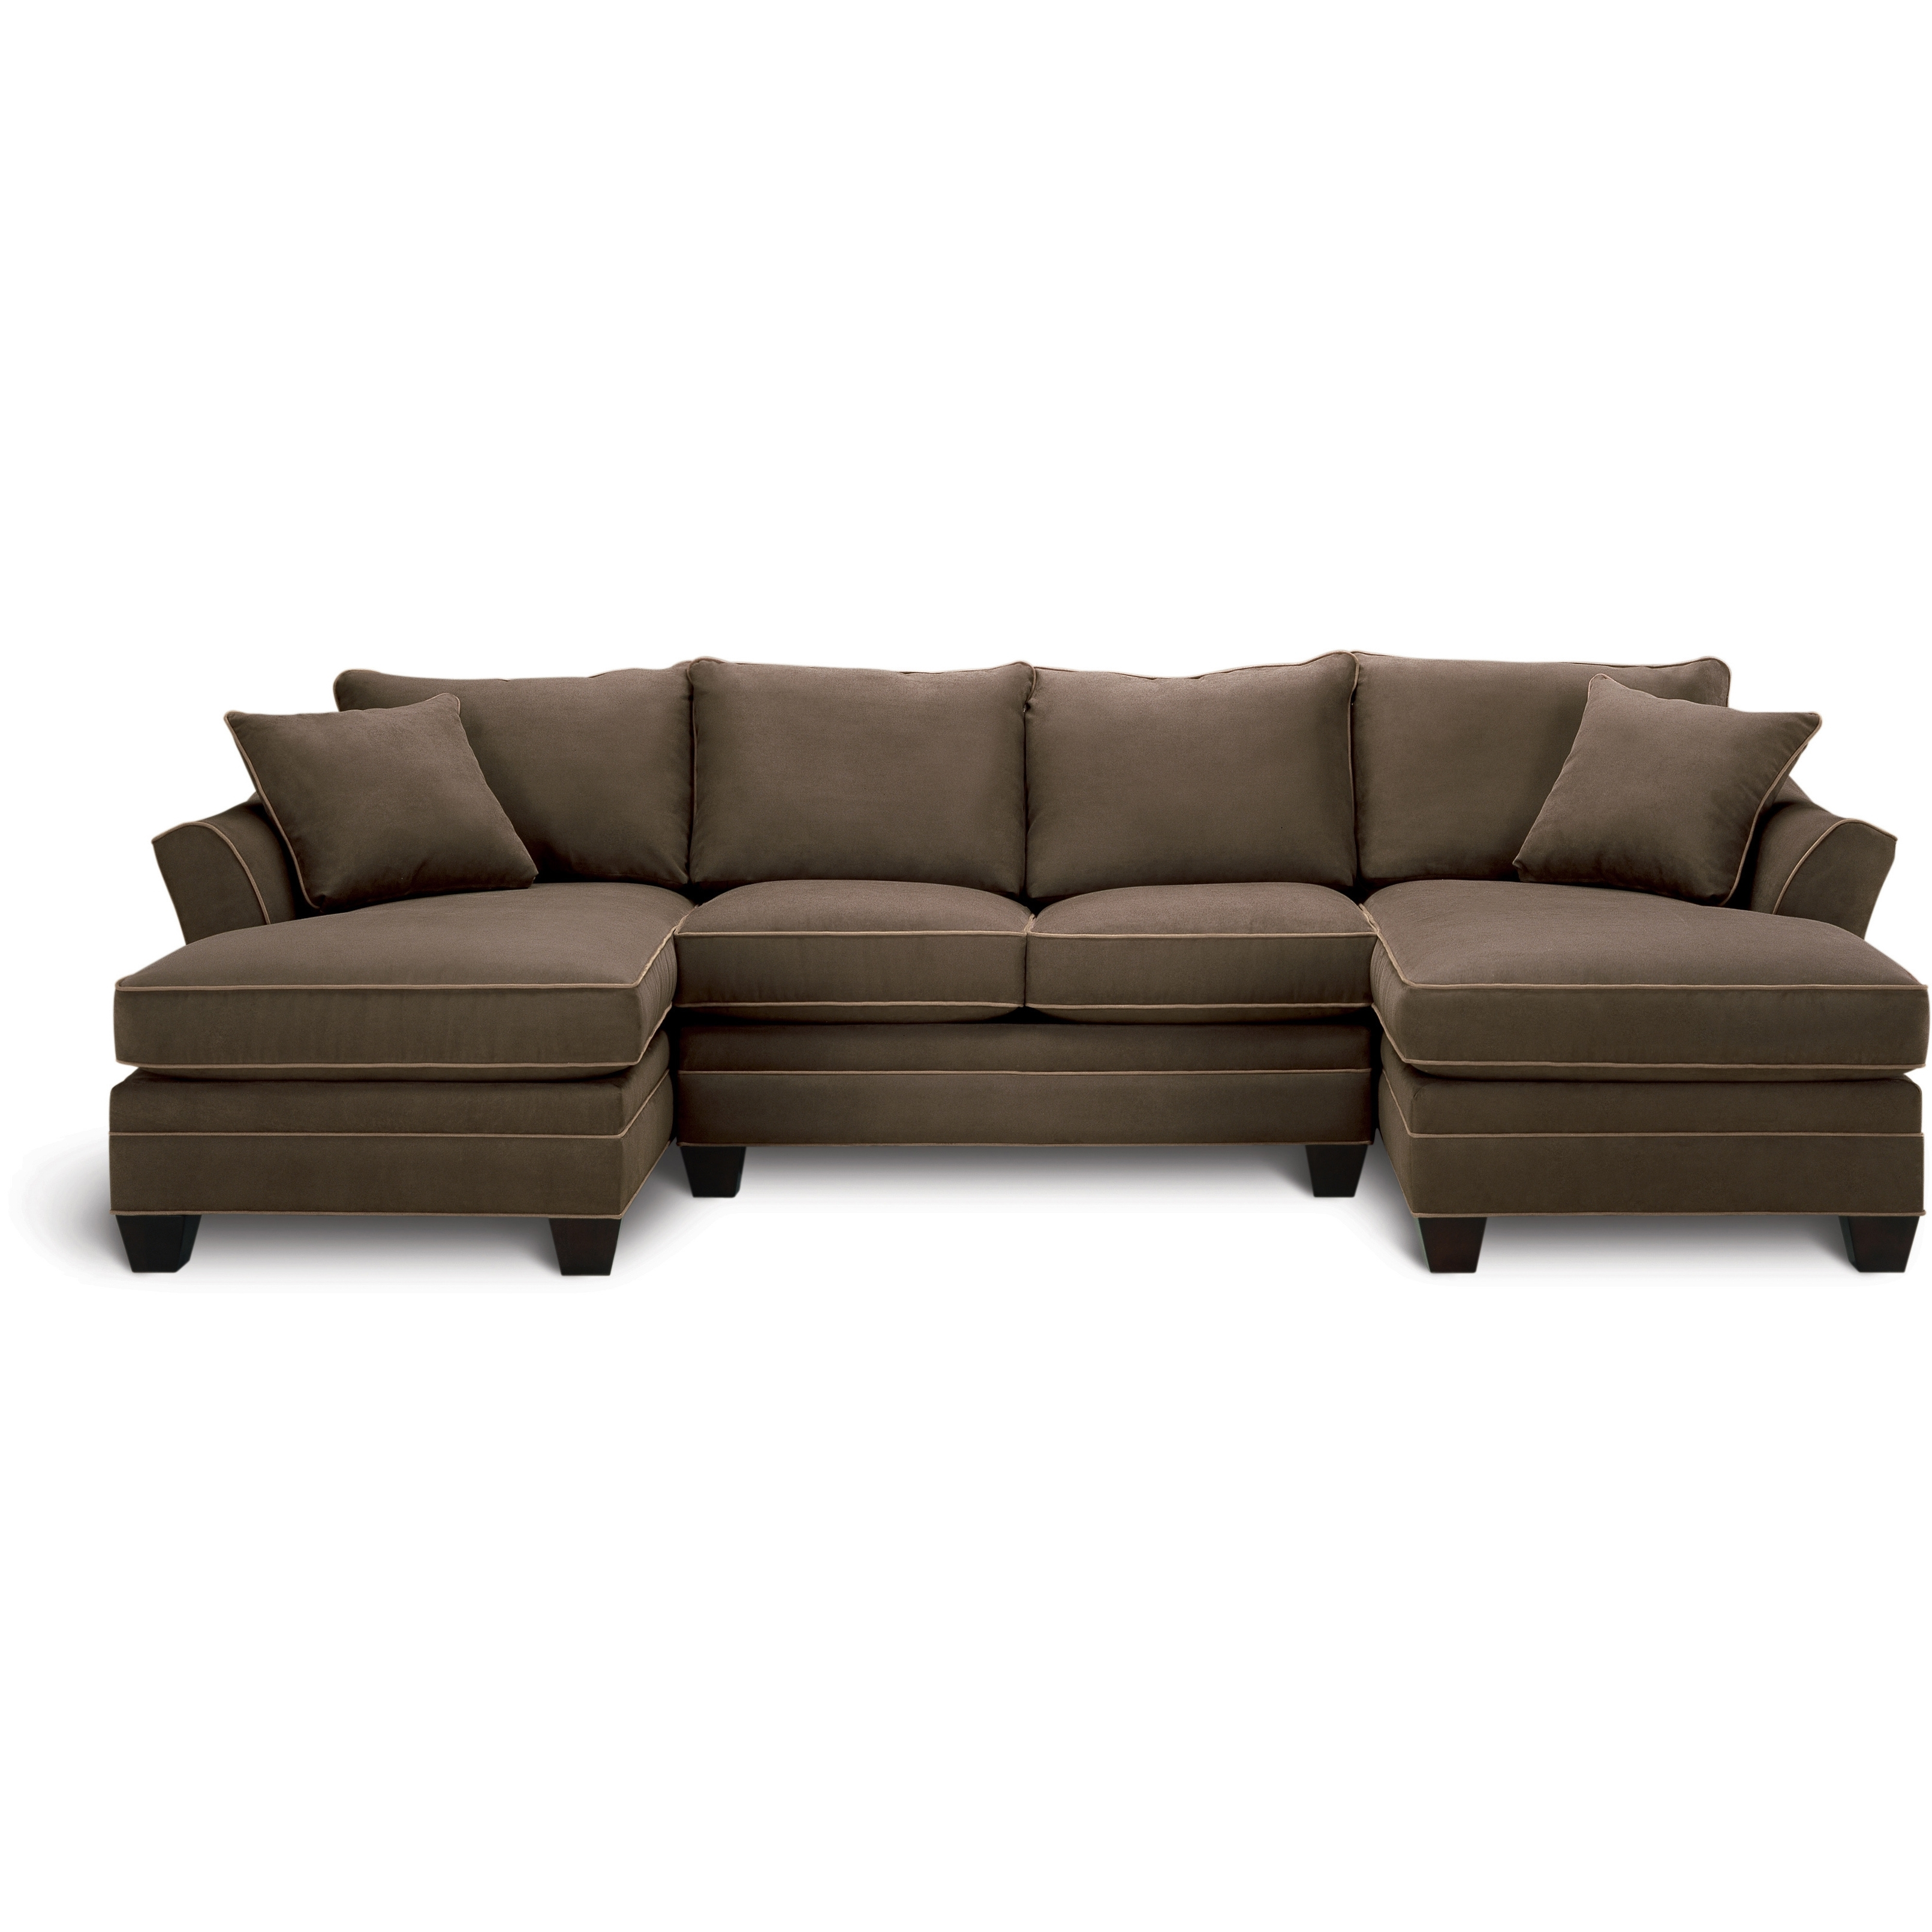 Joplin Mo Sectional Sofas With Regard To Latest Make The Most Of Your Space With The Dillon Sectional That Offers (View 17 of 20)